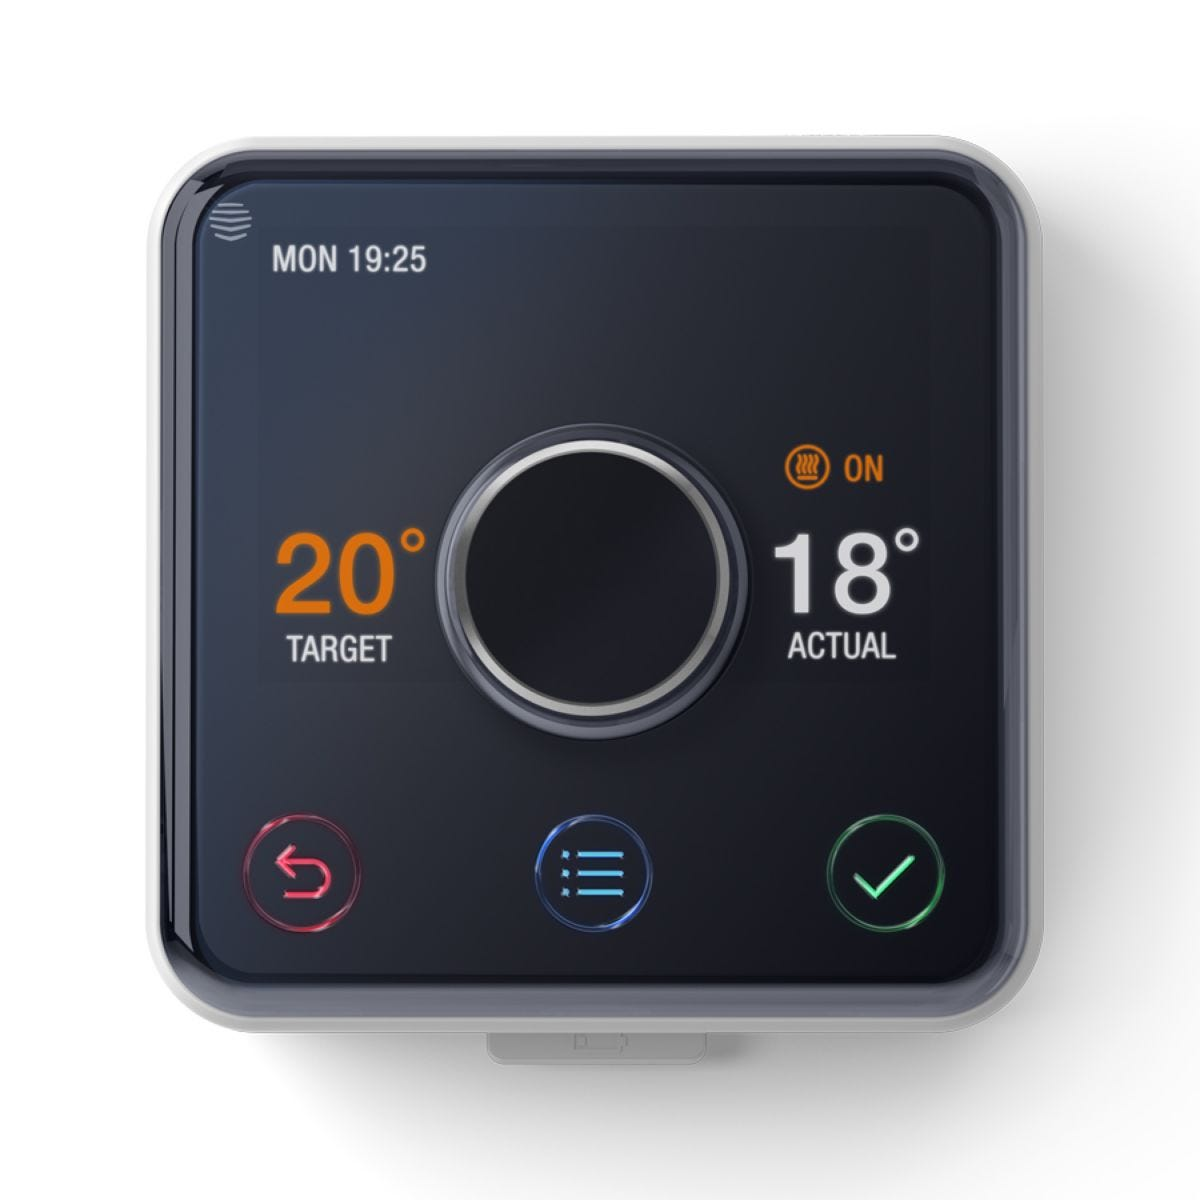 Hive Active Heating & Hot Water Thermostat without Professional Installation